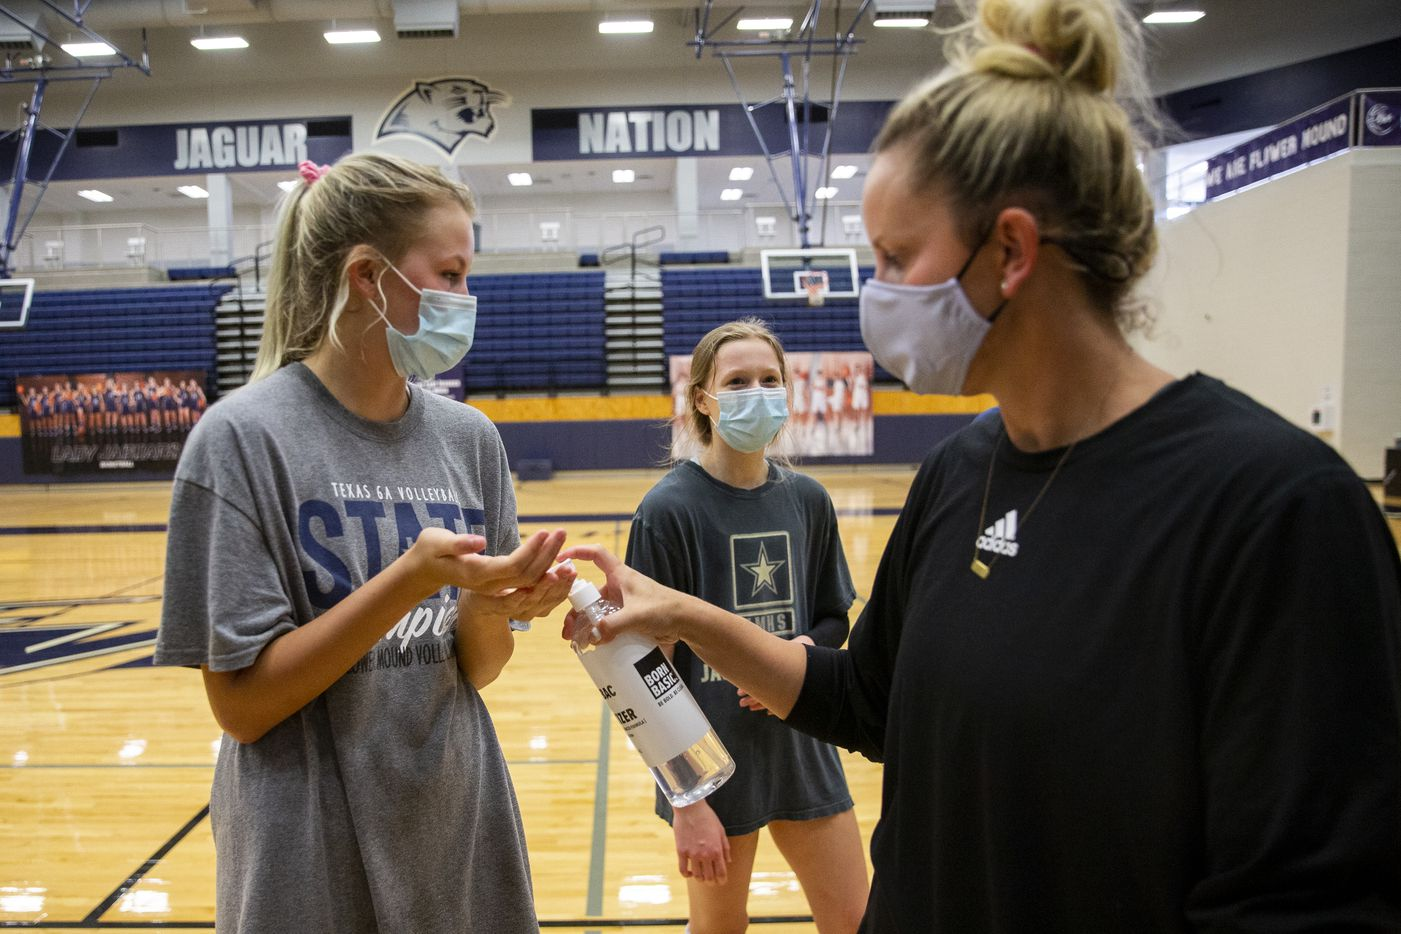 Flower Mound High School volleyball coach Jamie Siegel (right) gives player Gabby Walker hand sanitizer after practice on Sept. 8, 2020 in Flower Mound. (Juan Figueroa/ The Dallas Morning News)